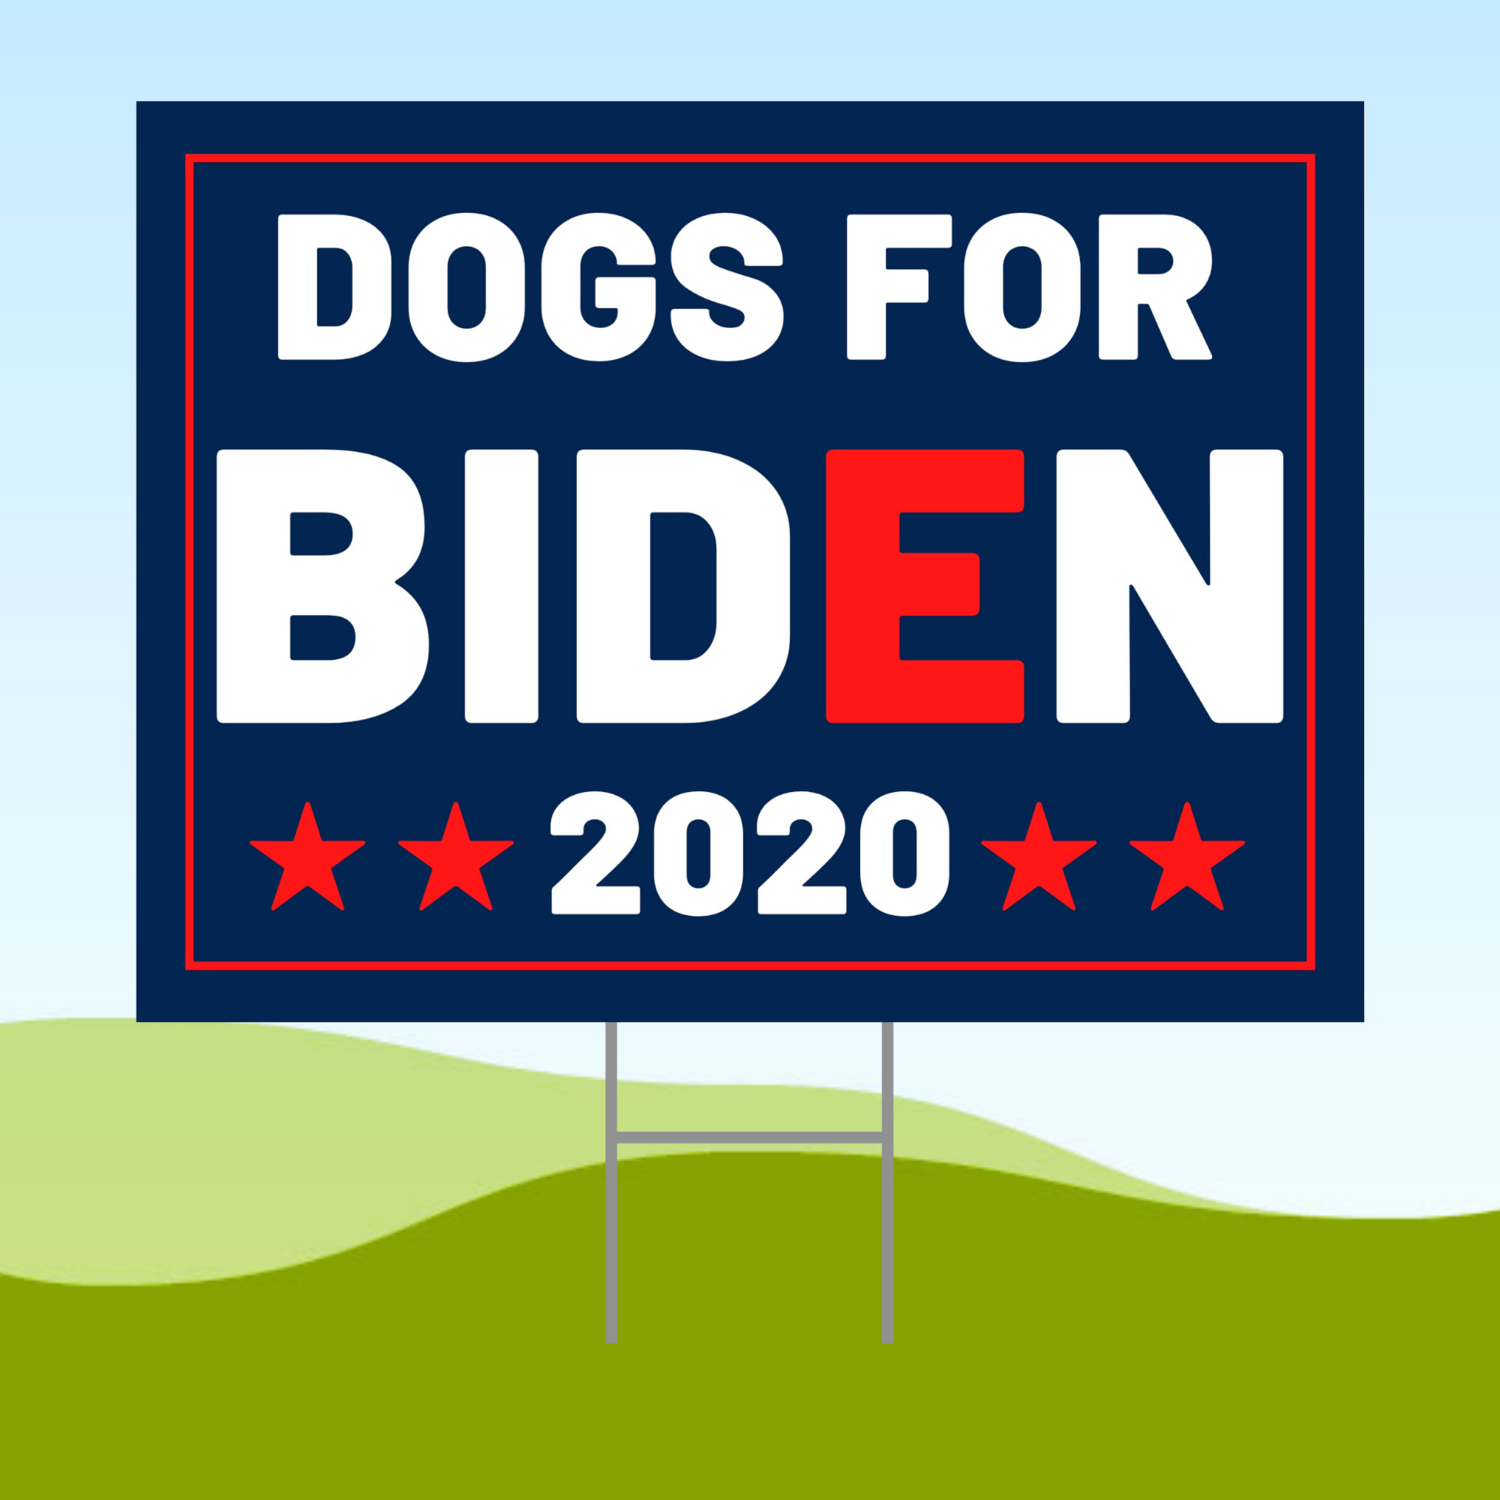 Dogs For Biden Yard Sign 18x24 Corrugated Plastic Bandit 1-sided WATERPROOF Lawn WITH STAKE